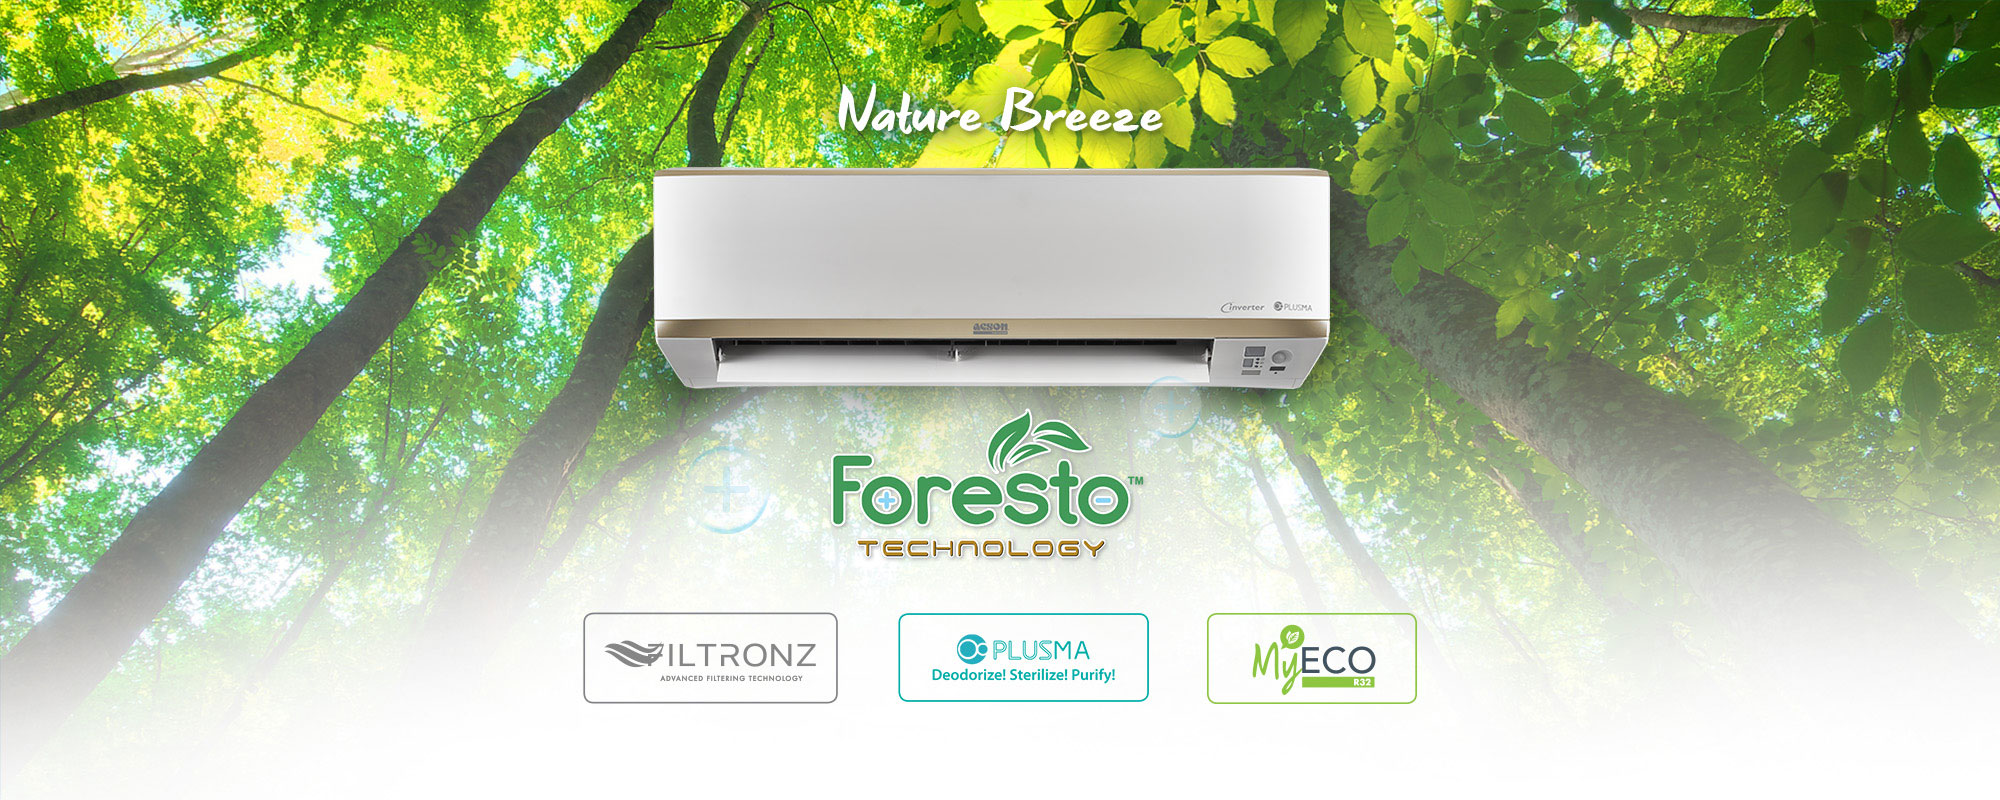 Foresto Technology